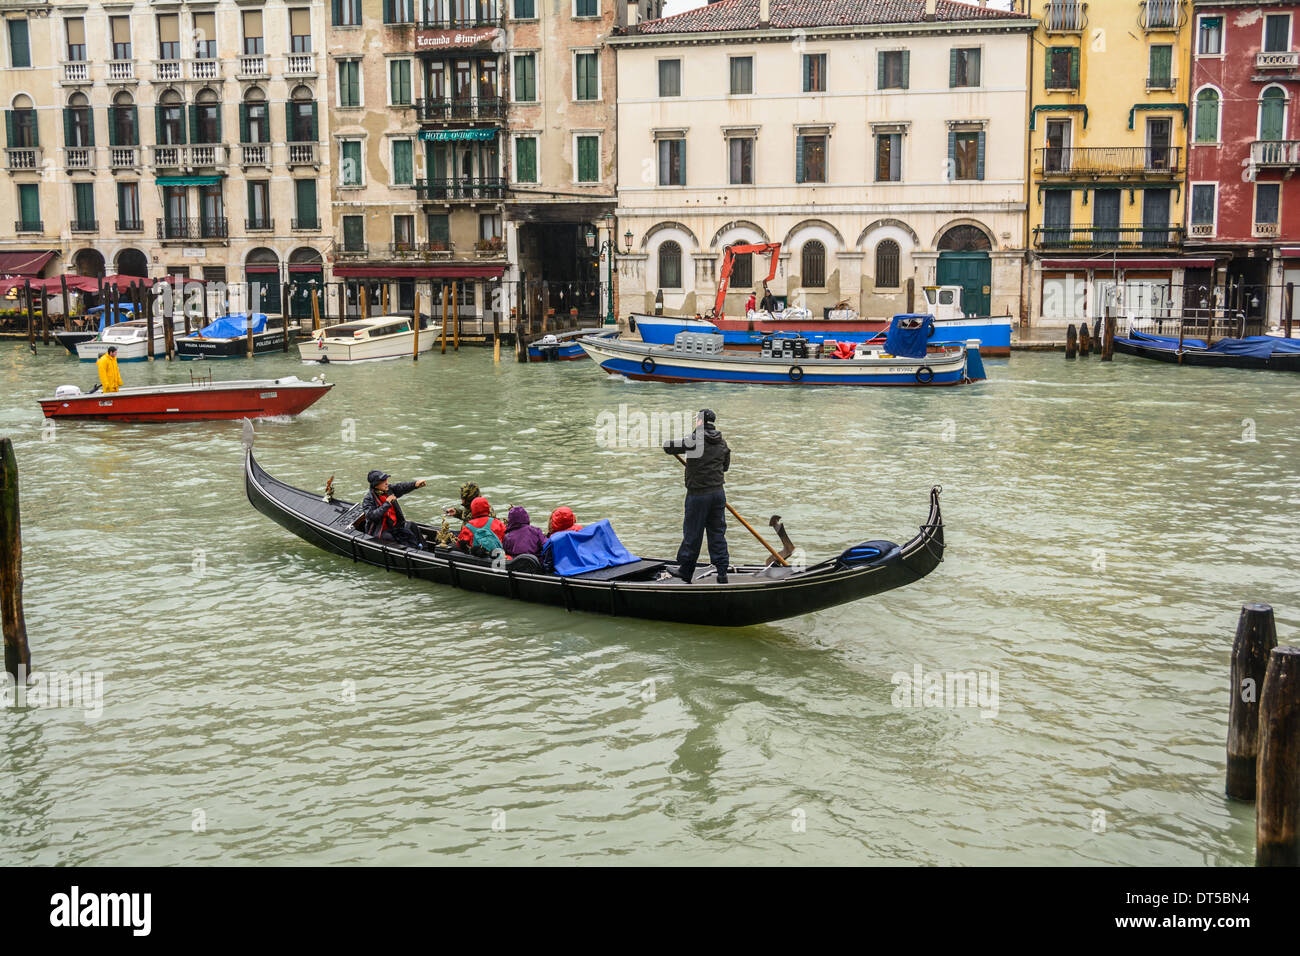 Winter in Venice, Italy. Gondola and boat traffic on the Grand Canal, Canal Grande. Stock Photo